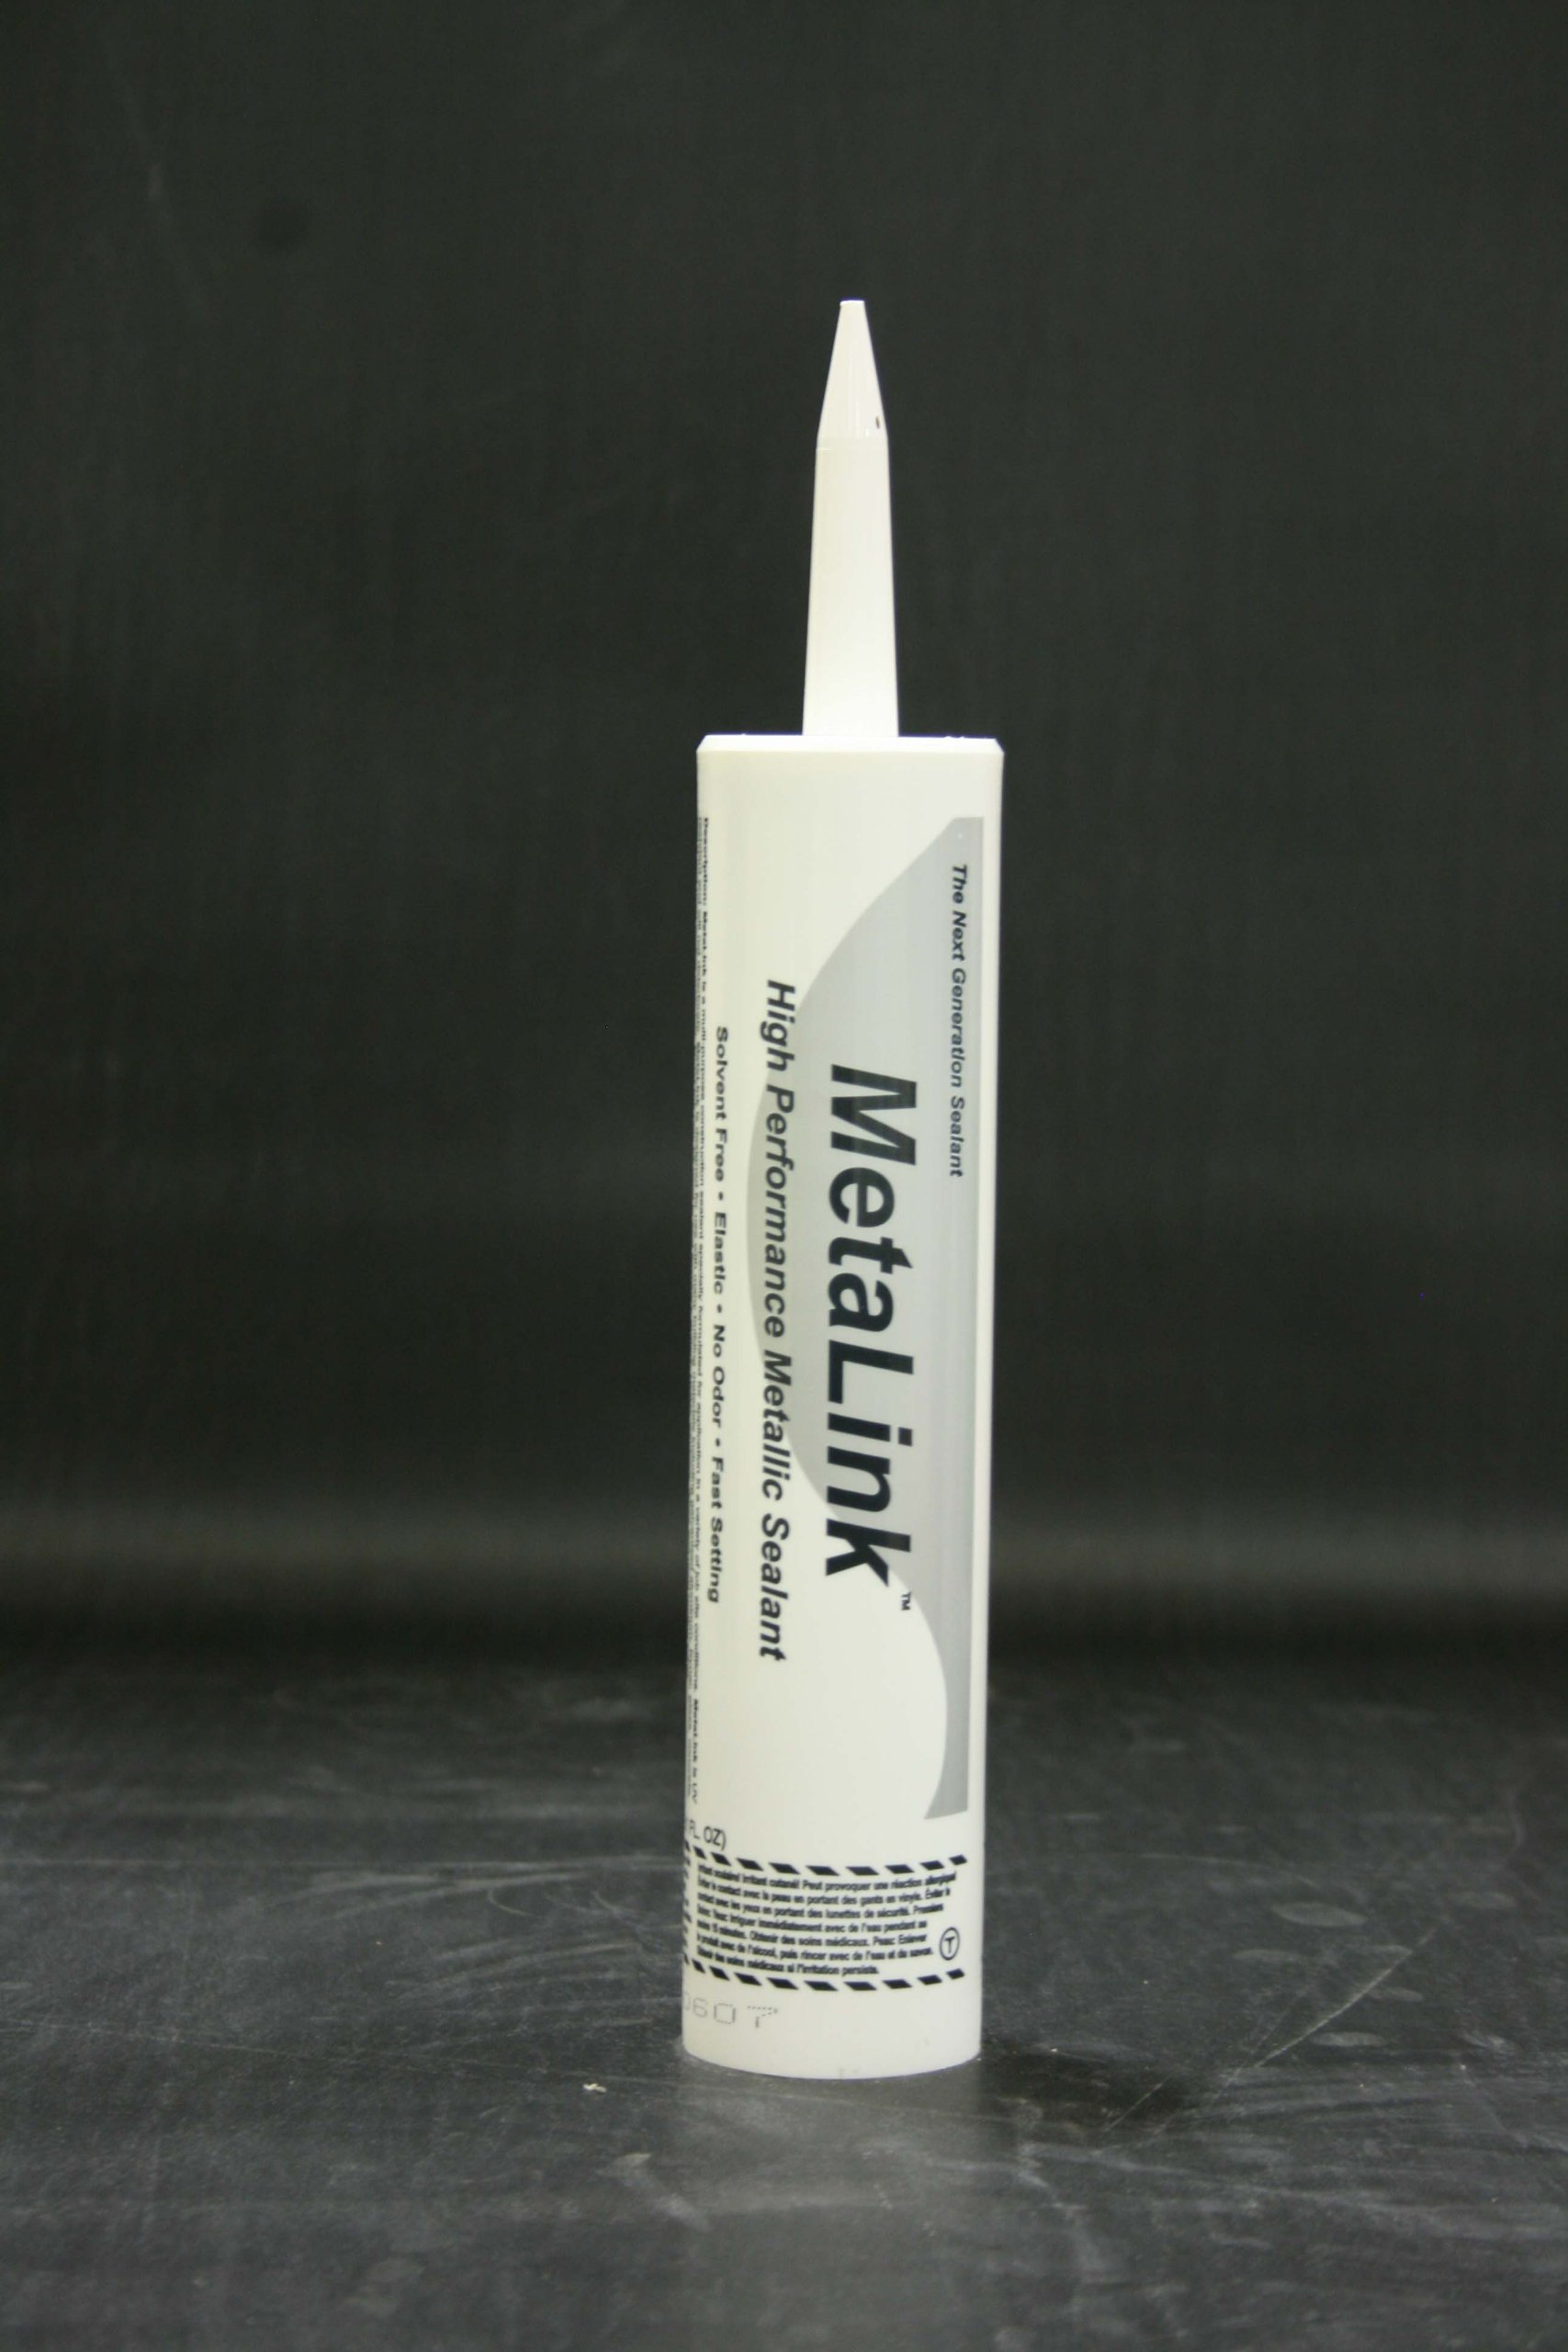 MetaLink High Performance Metallic Sealant 24/10.1oz pack